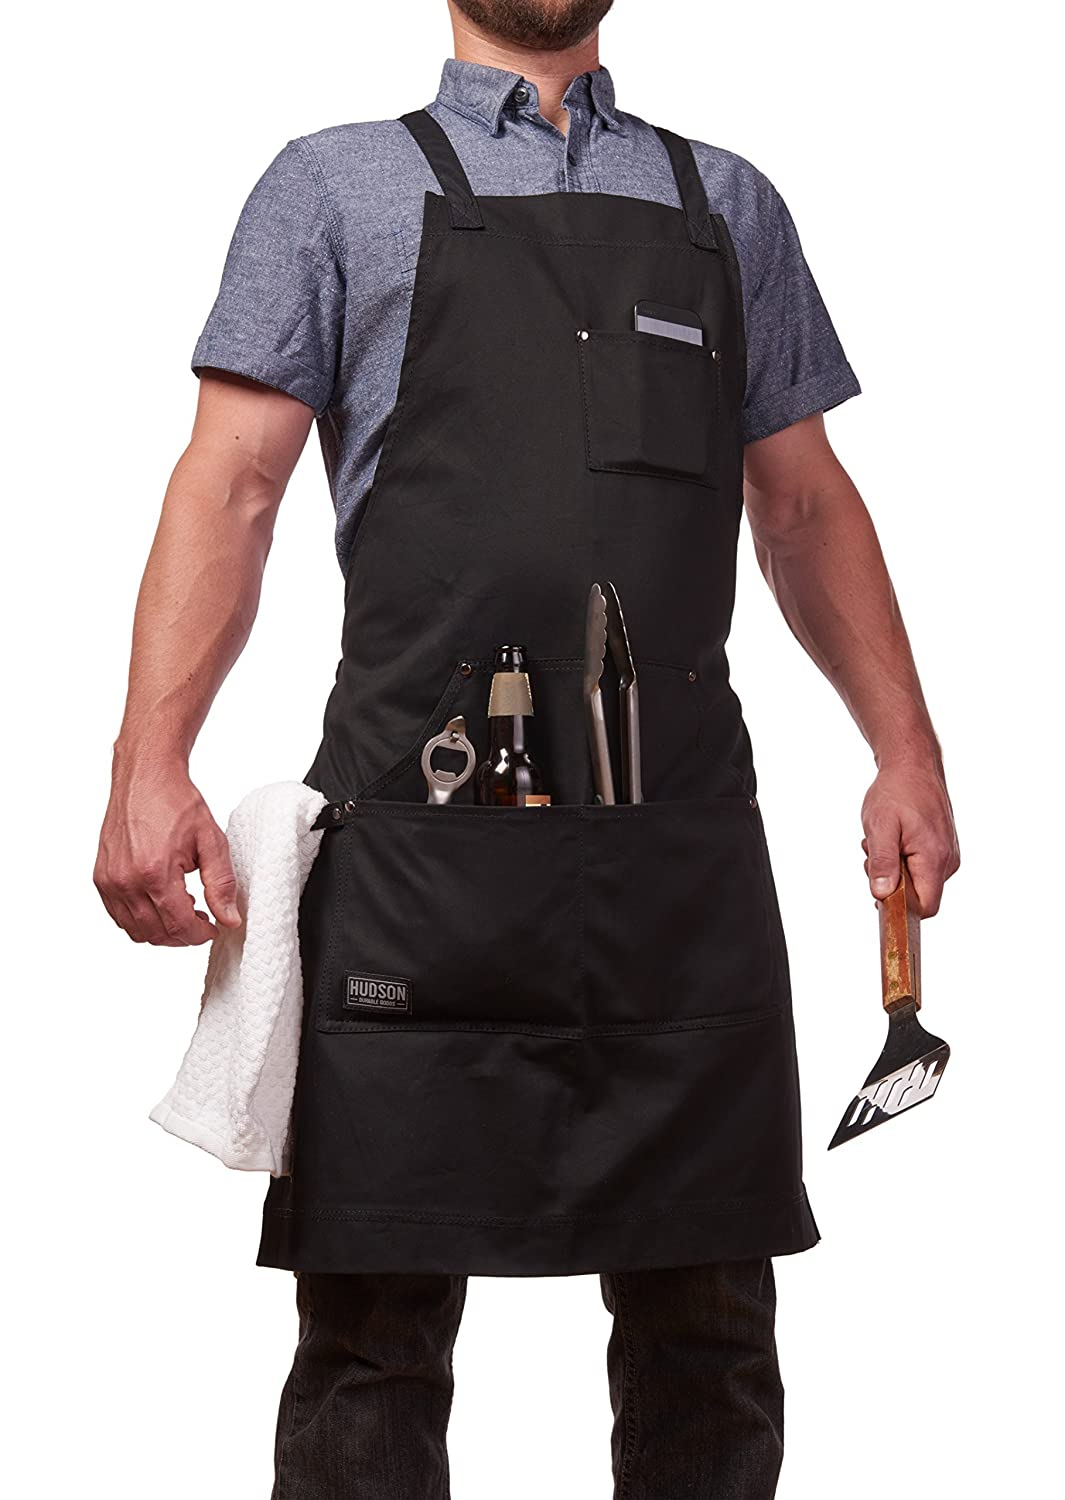 Hudson Durable Goods - Professional Grade Chef Apron for Kitchen, BBQ, and  Grill (Black) with Towel Loop + Tool Pockets + Quick Release Buckle,